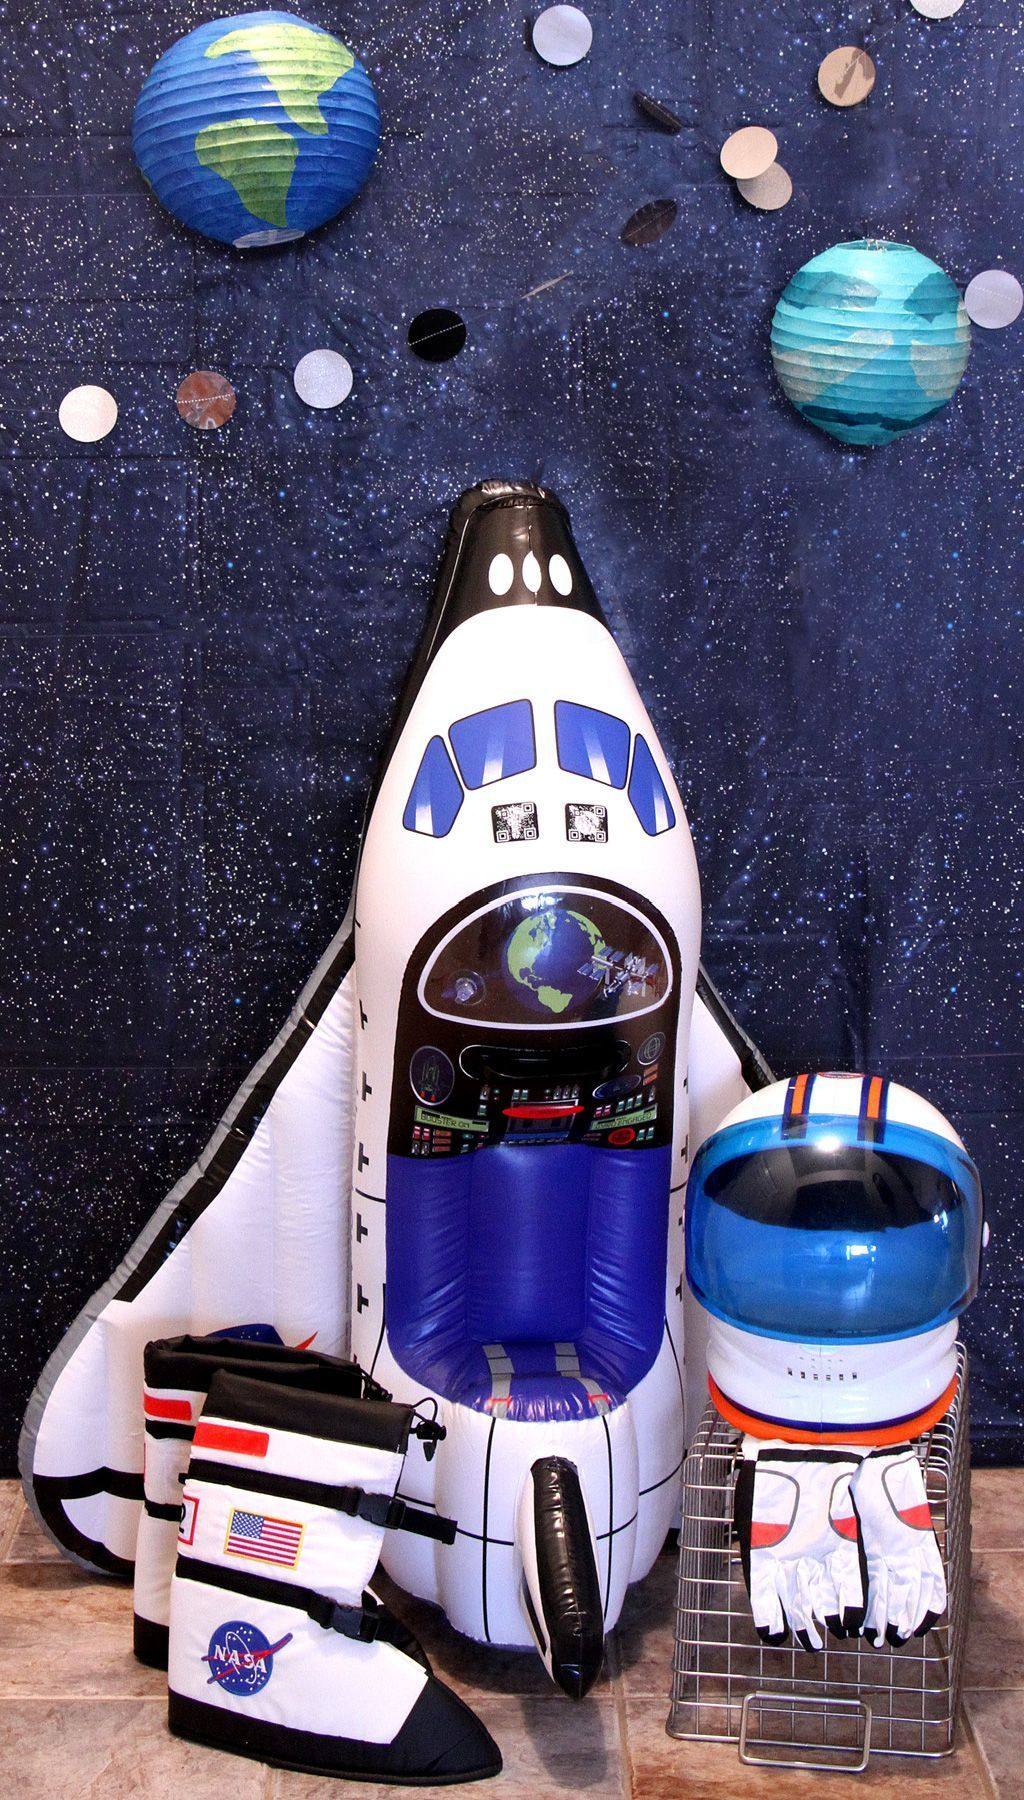 Outer Space Birthday Party #outerspaceparty Outer Space Party | Party Ideas & Activities by Wholesale Party Supplies #outerspaceparty Outer Space Birthday Party #outerspaceparty Outer Space Party | Party Ideas & Activities by Wholesale Party Supplies